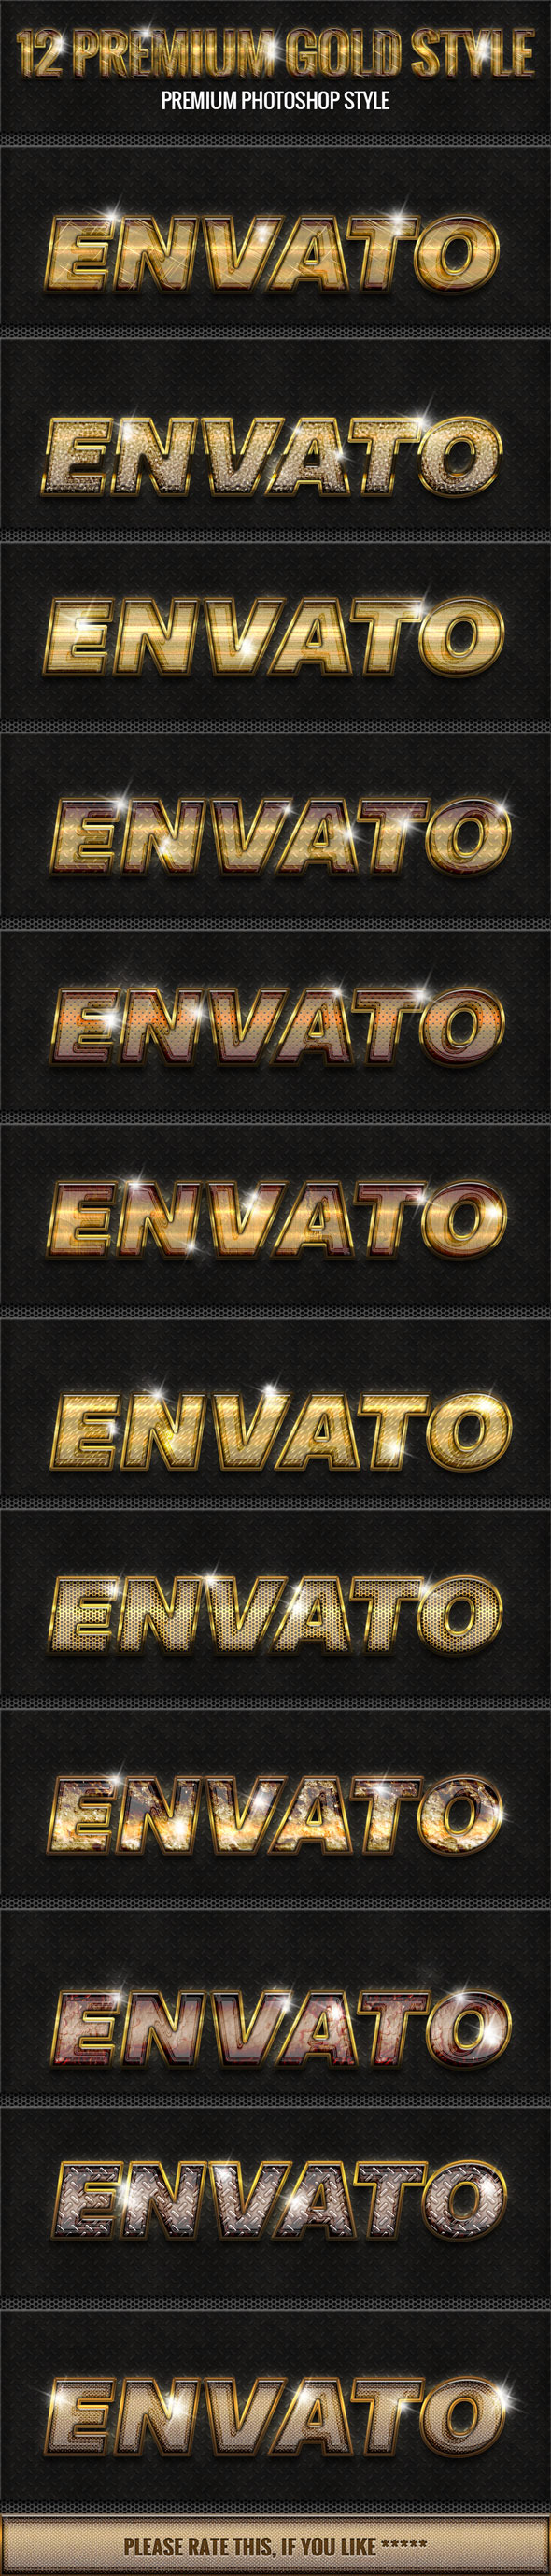 12 New Gold Style 3 - Styles Photoshop